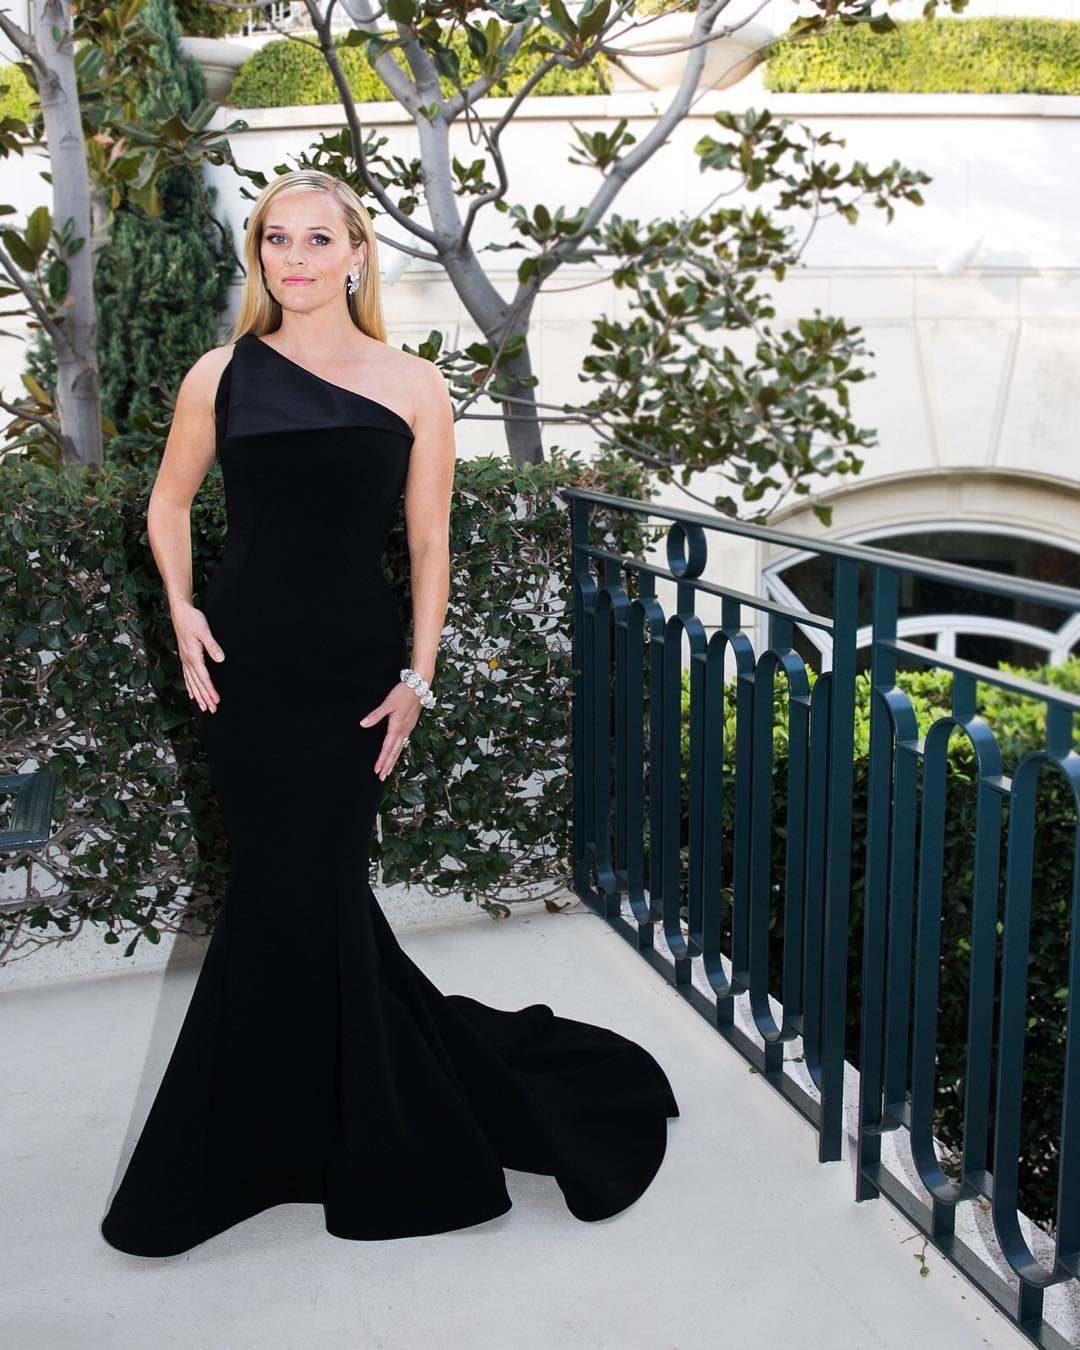 Reese Witherspoon was among the many women and men who wore black to the Golden Globes in support of Time's Up.